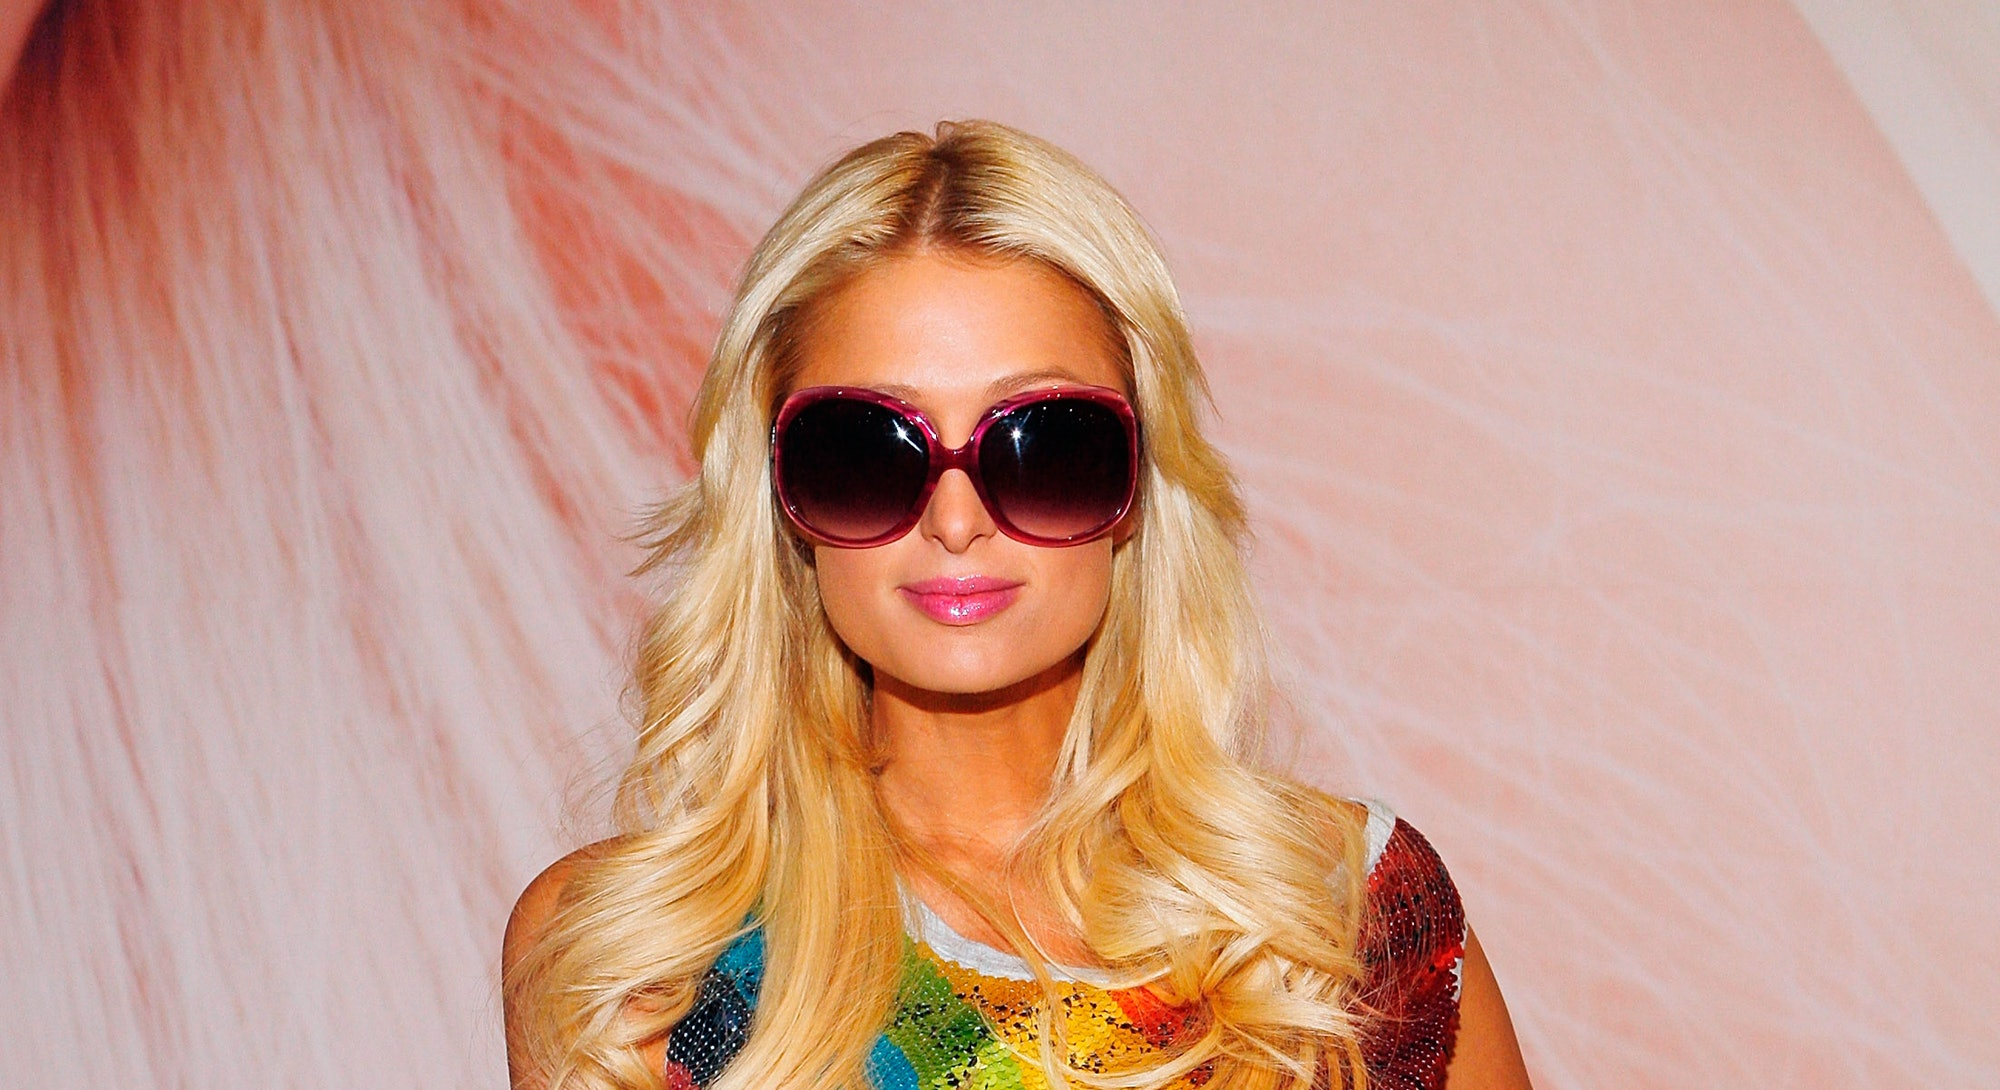 LAS VEGAS - OCTOBER 02:  Paris Hilton launches her sunglass line by Gripping Eyewear at the Sands Expo Center on October 2, 2009 in Las Vegas, Nevada.  (Photo by Isaac Brekken/Getty Images for Gripping Eyewear)